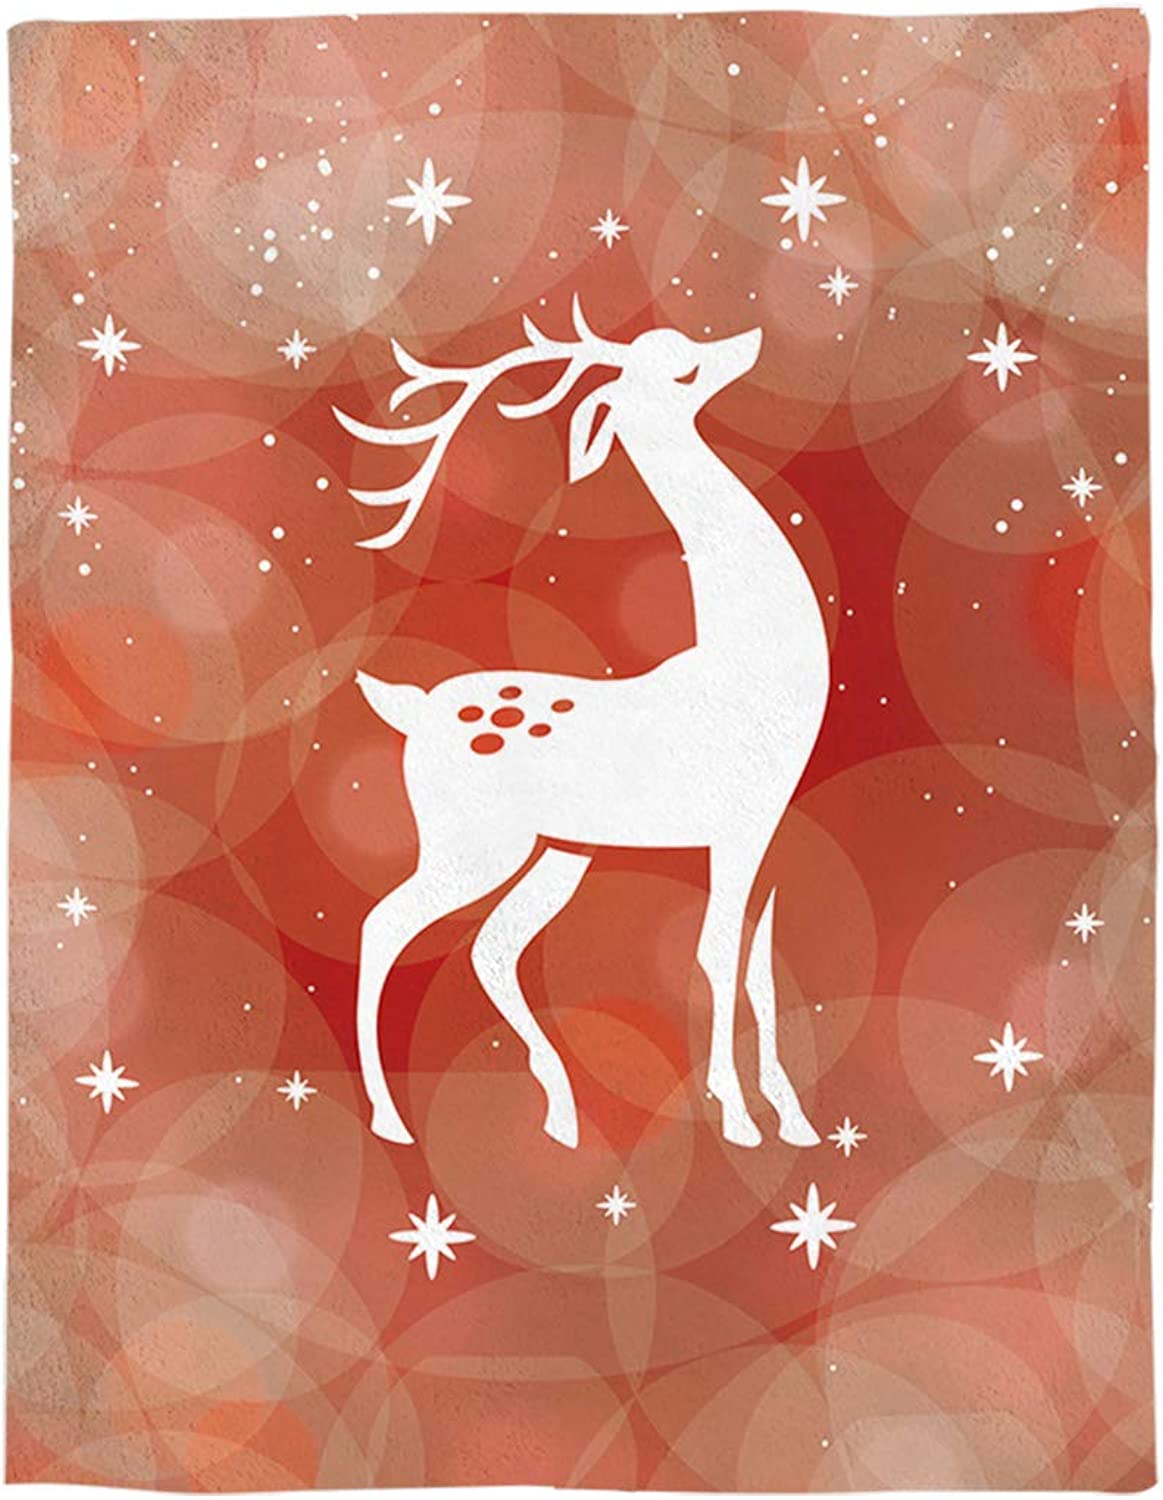 YEHO Art Gallery Flannel Fleece Bed Blanket Soft ThrowBlankets for Adult Kids Girls Boys,The Shadow of Christmas Deer orange Pattern,Lightweight Blankets for Bedroom Living Room Sofa Couch,49x59inch